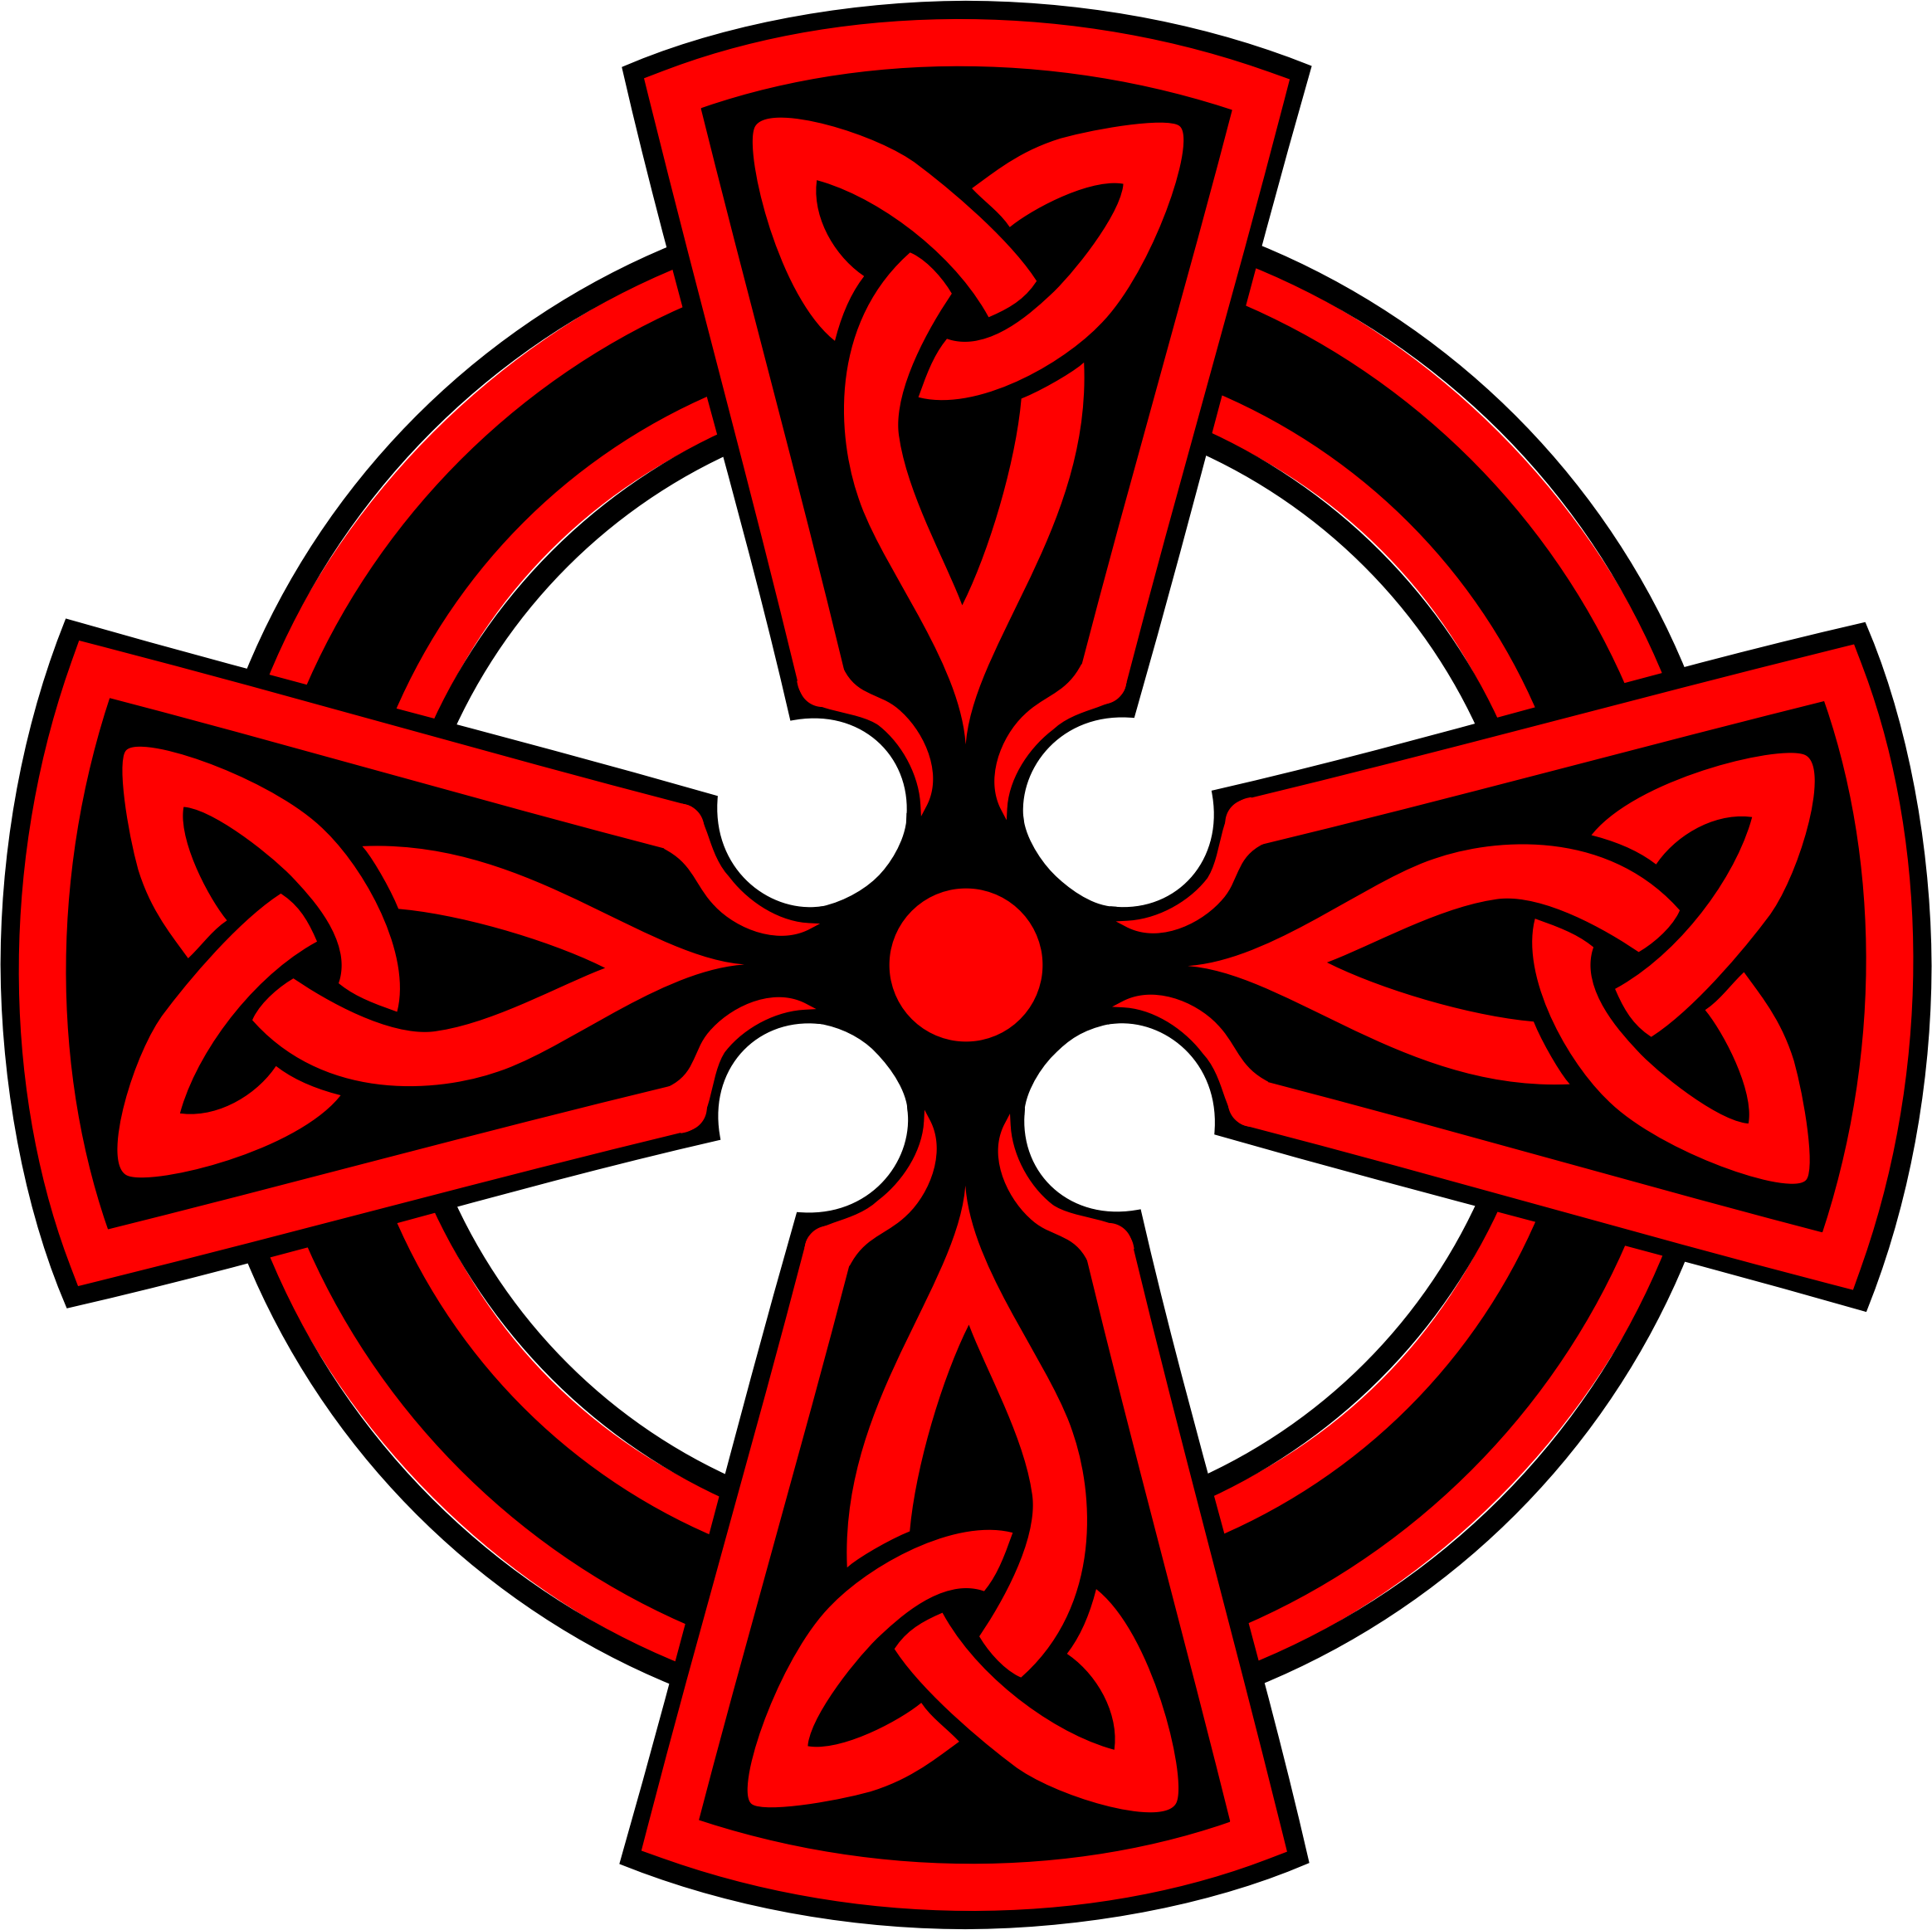 Celtic Cross DecorativeTriquetras Red by GDJ